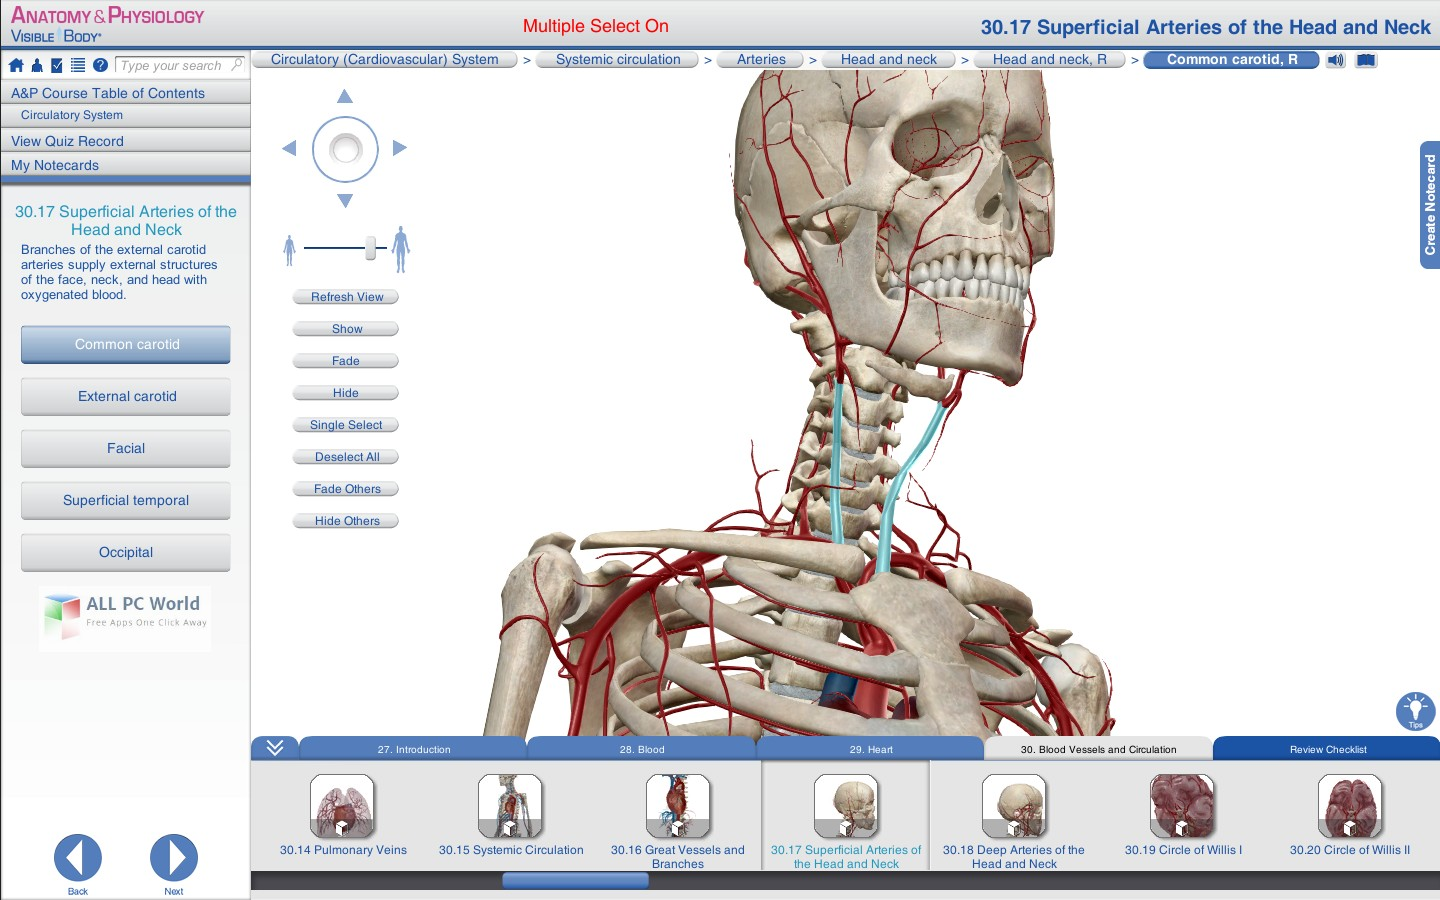 Visible Body Anatomy and Physiology 1.5 Review - ALL PC World